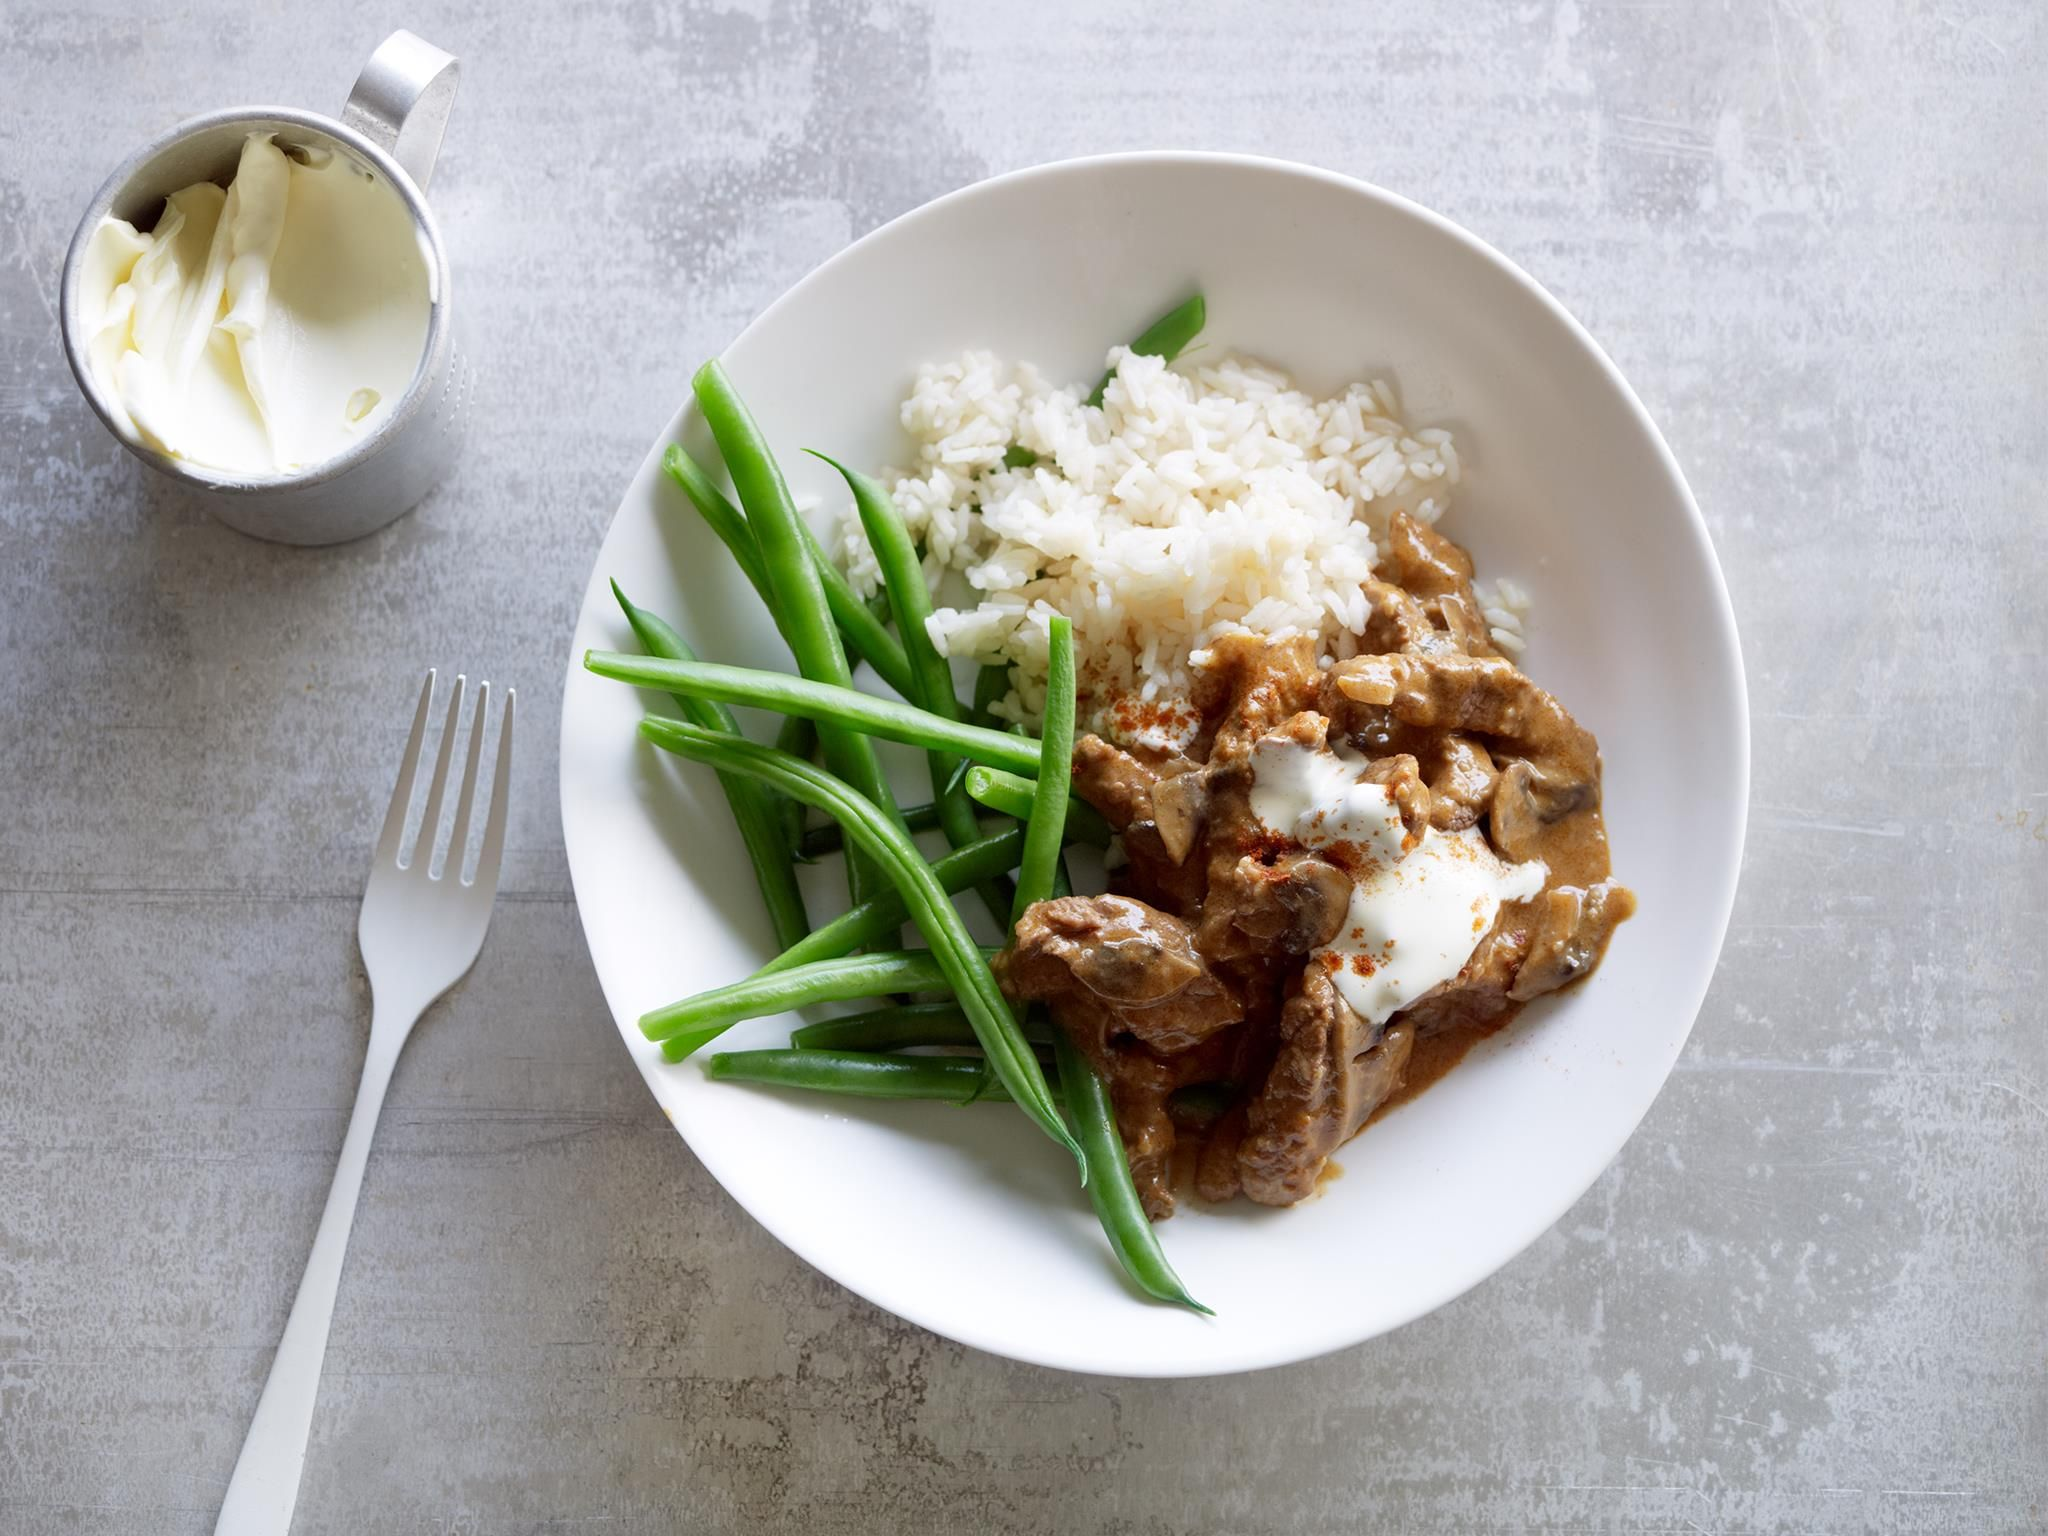 Beef stroganoff is great comfort food! Tender strips of beef and mushrooms are sautéed in butter, then swirled with sour cream to make a creamy sauce. Serve with rice, mashed potato or pasta